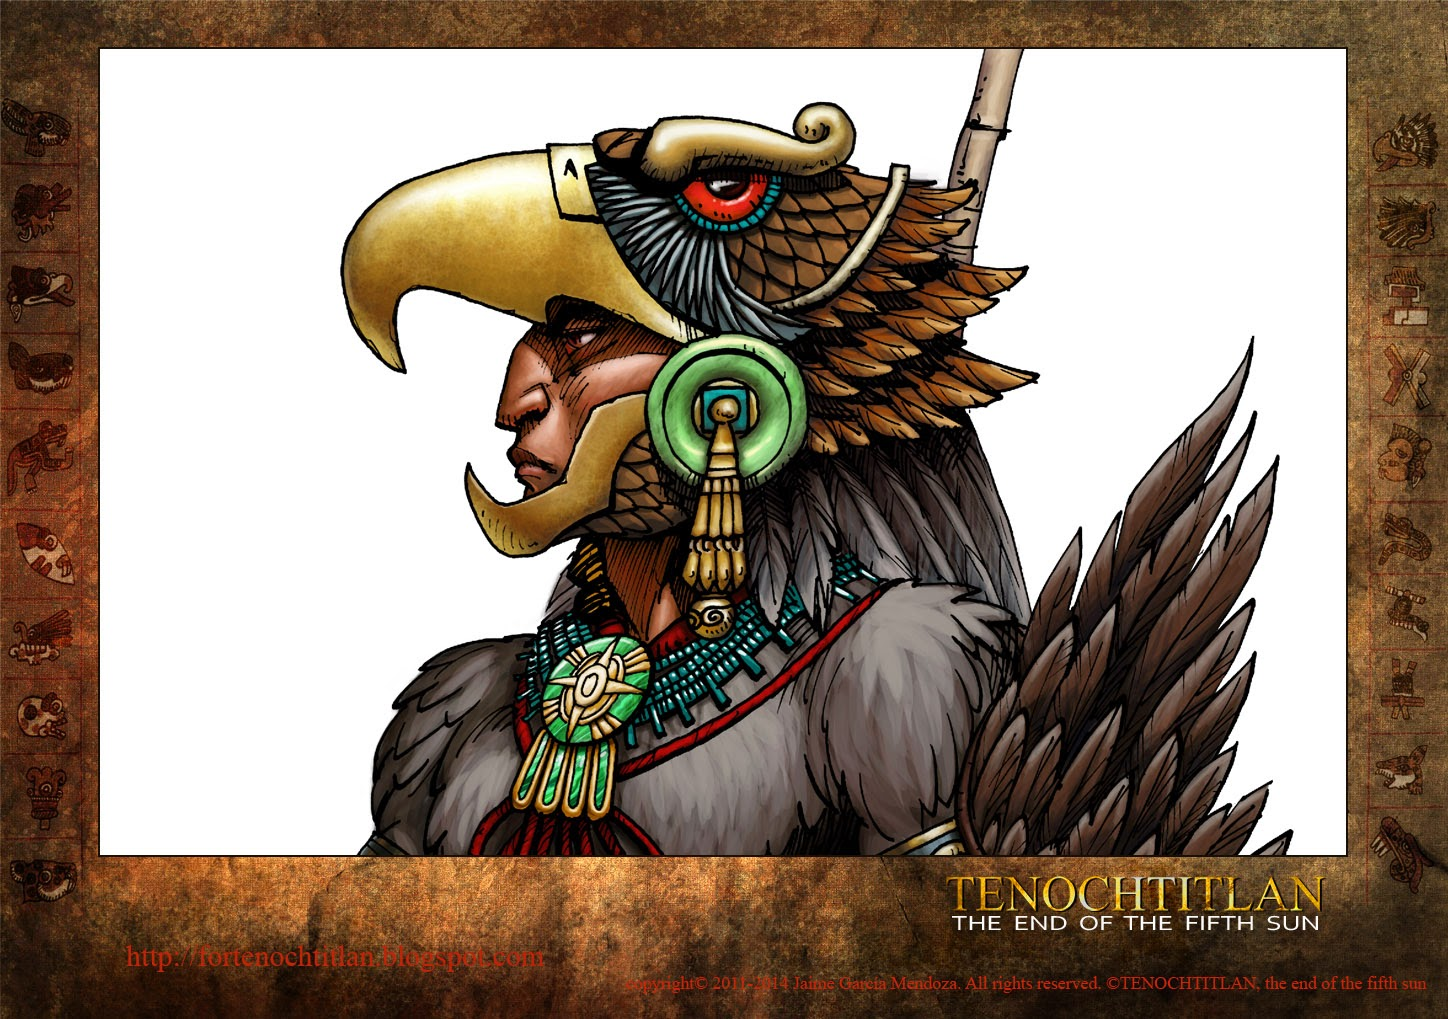 For Tenochtitlan, relation of a graphic novel: The Aztec ...